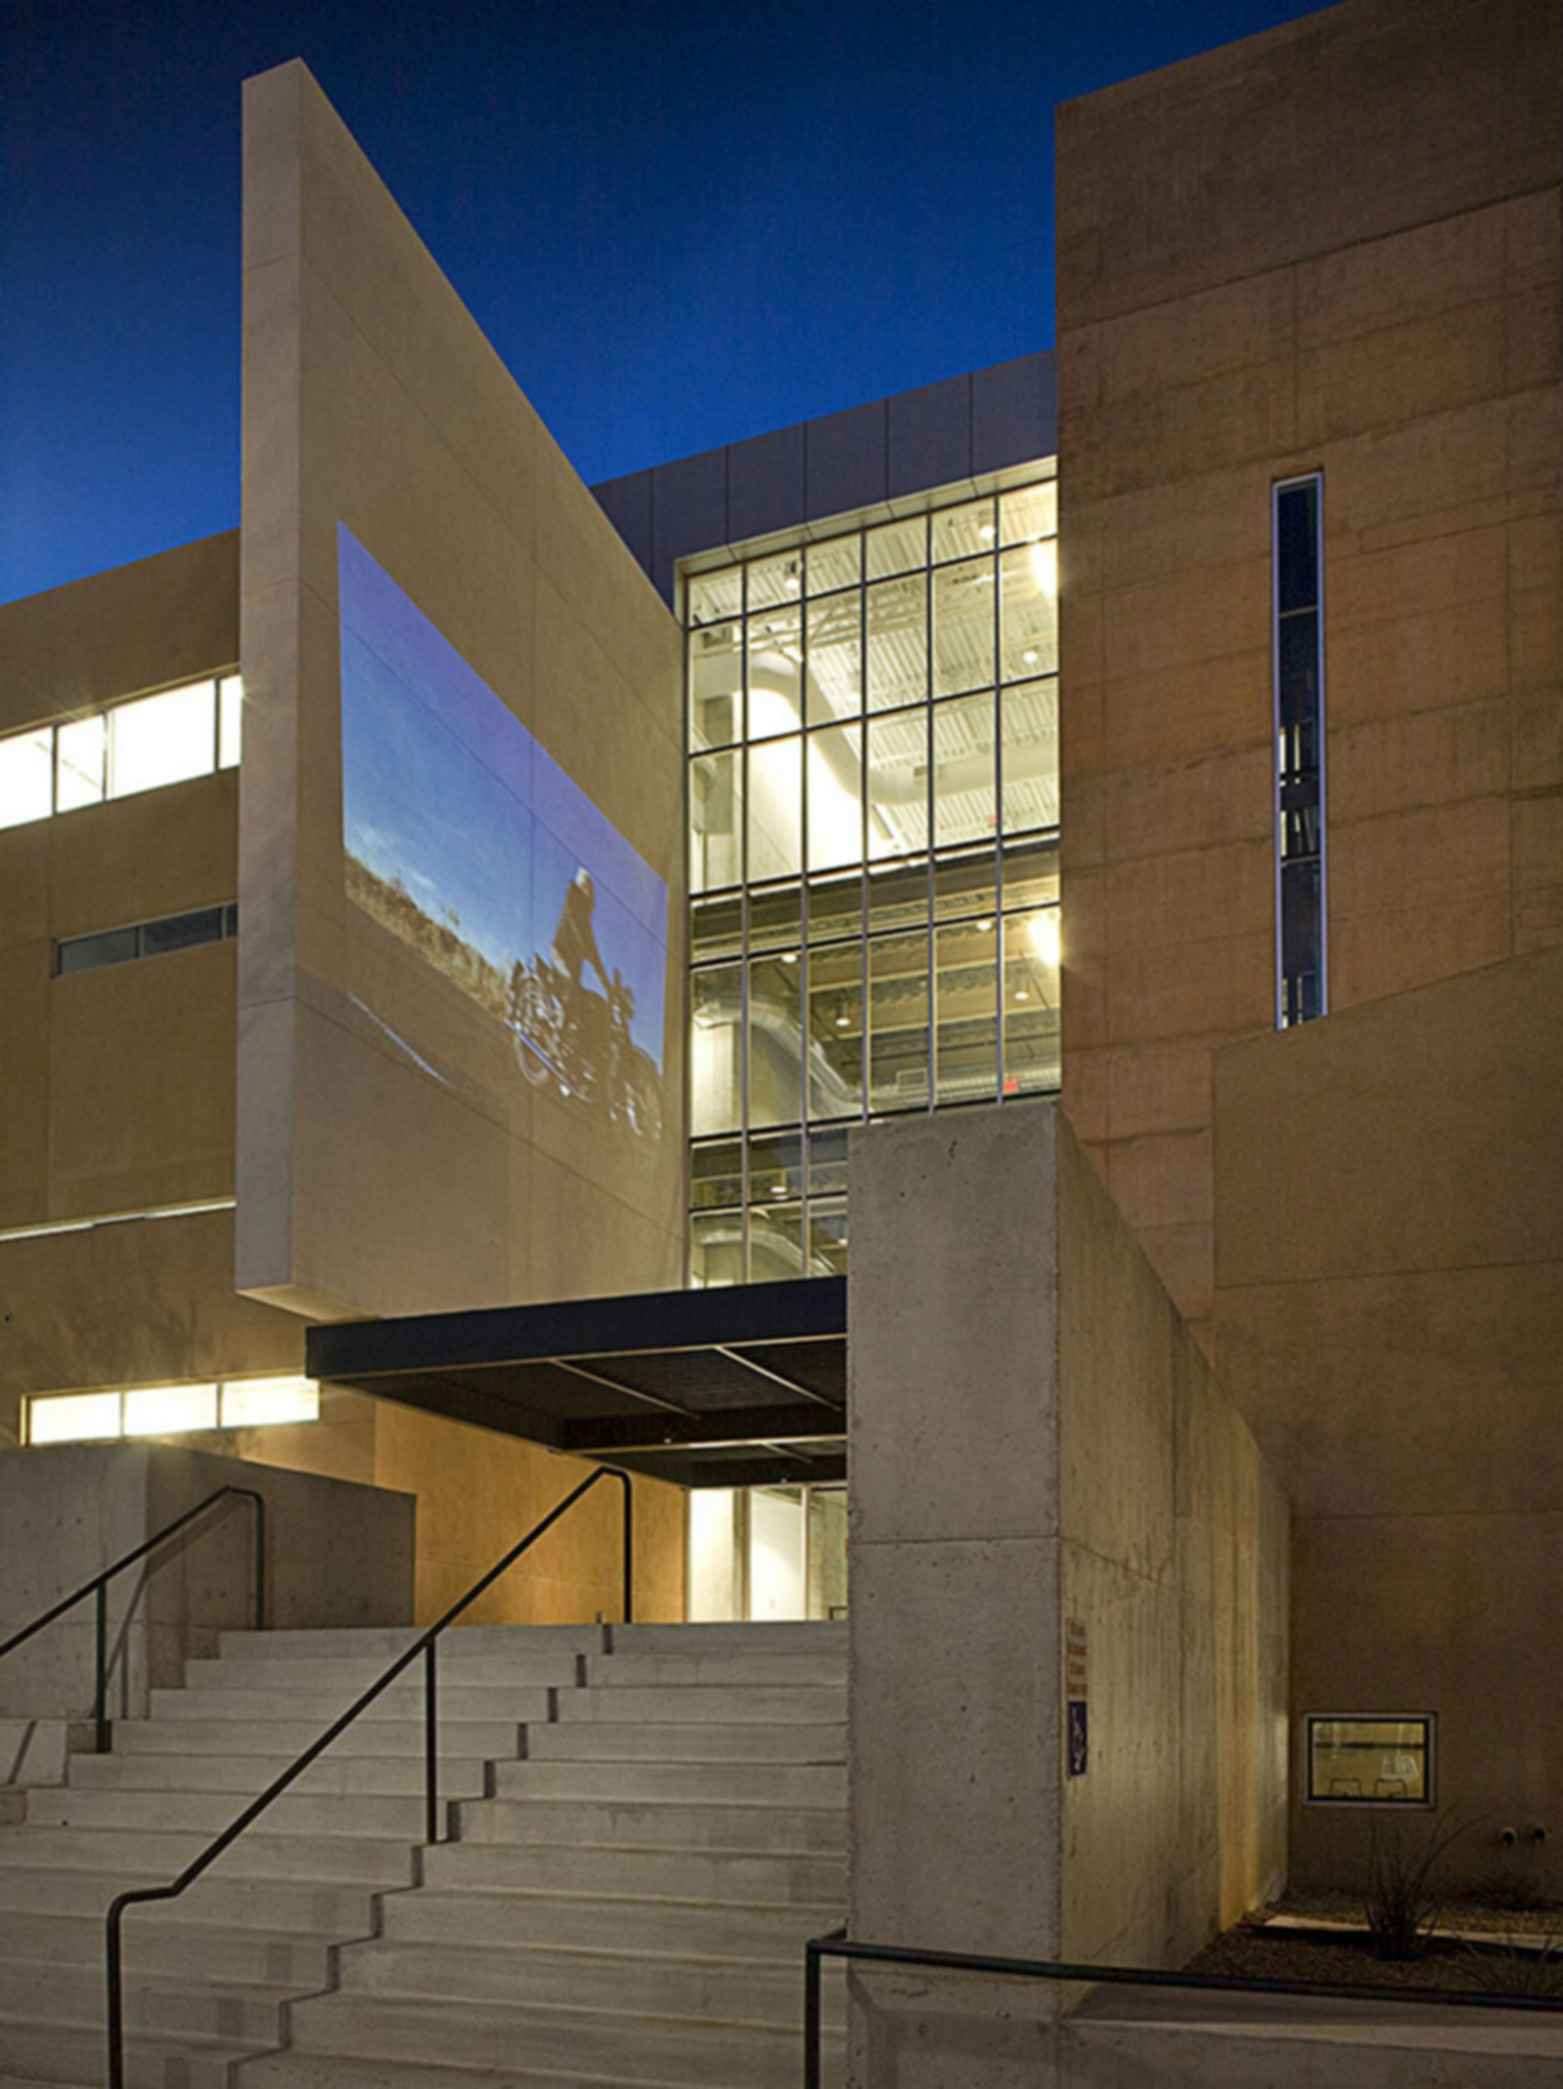 University of New Mexico School of Architecture and Planning - Exterior/Entrance